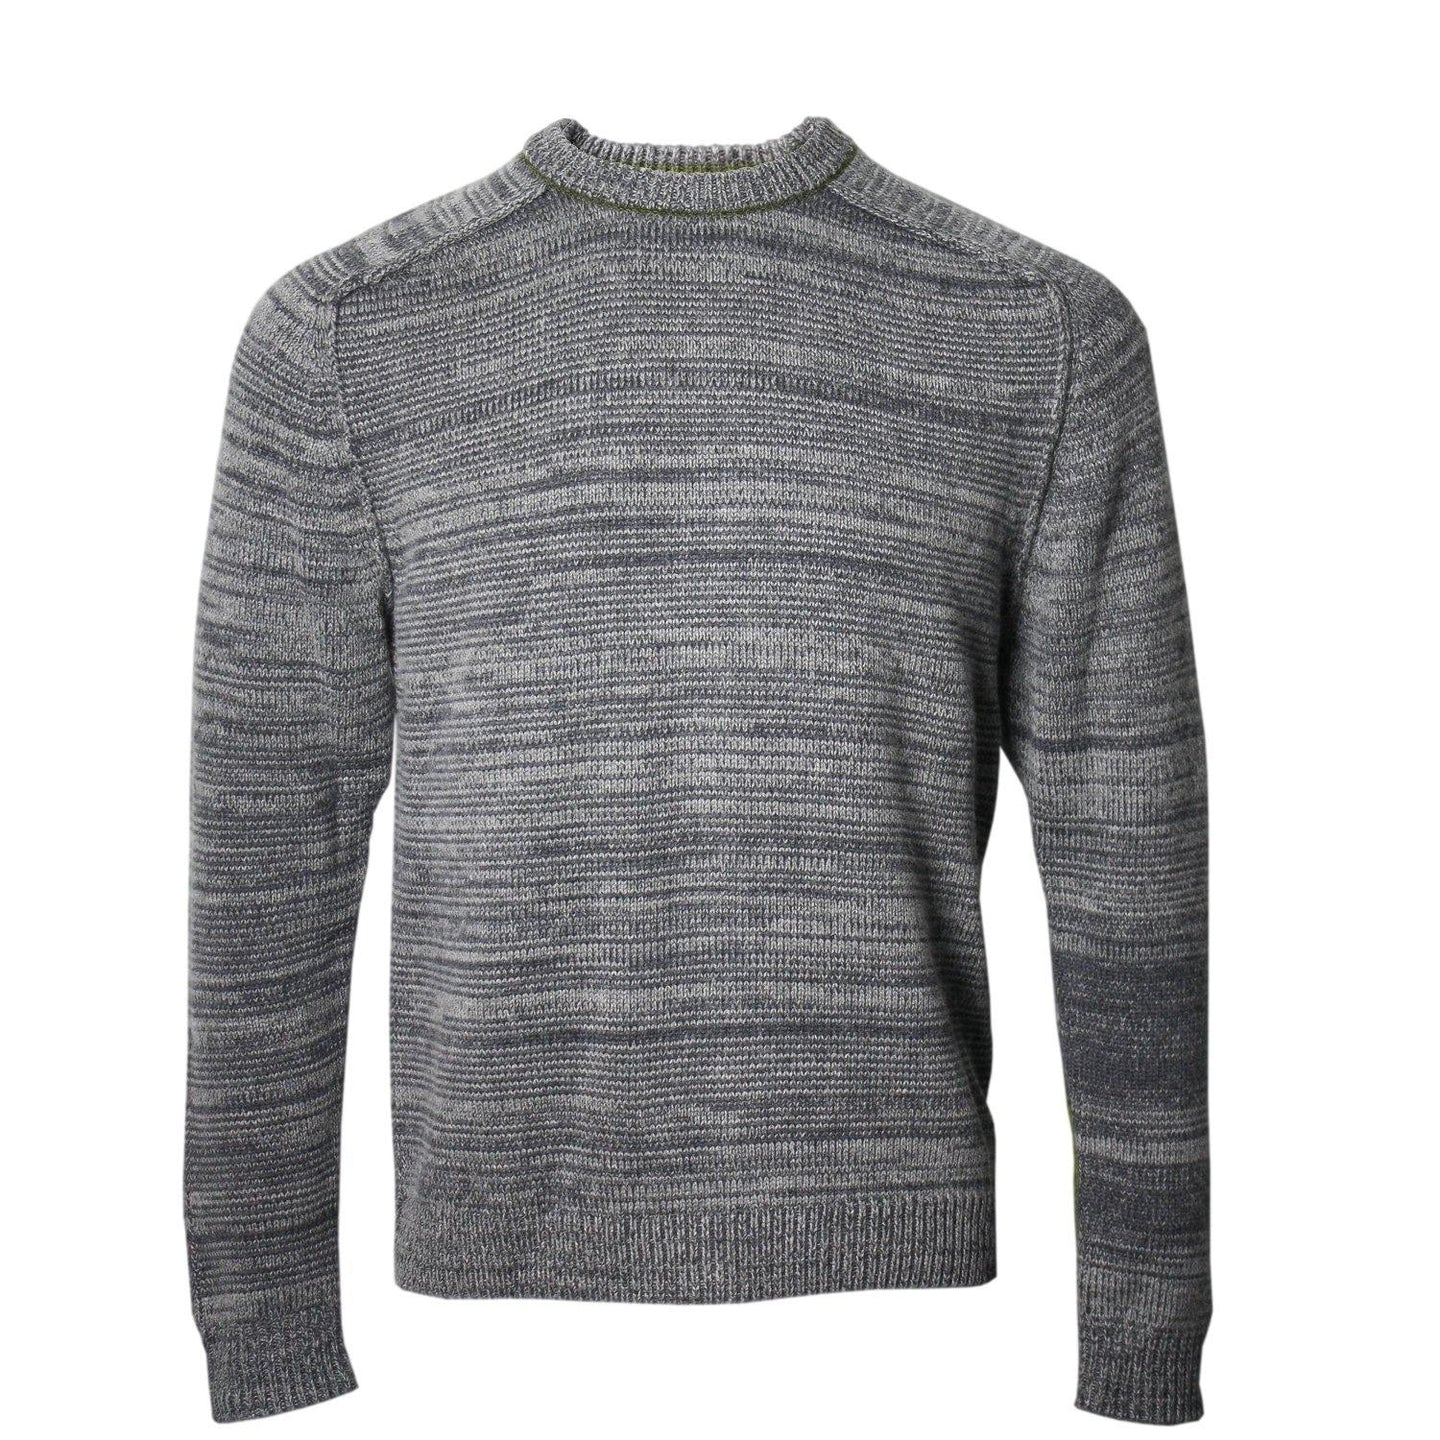 Crosby Crew Neck Sweater in Grey